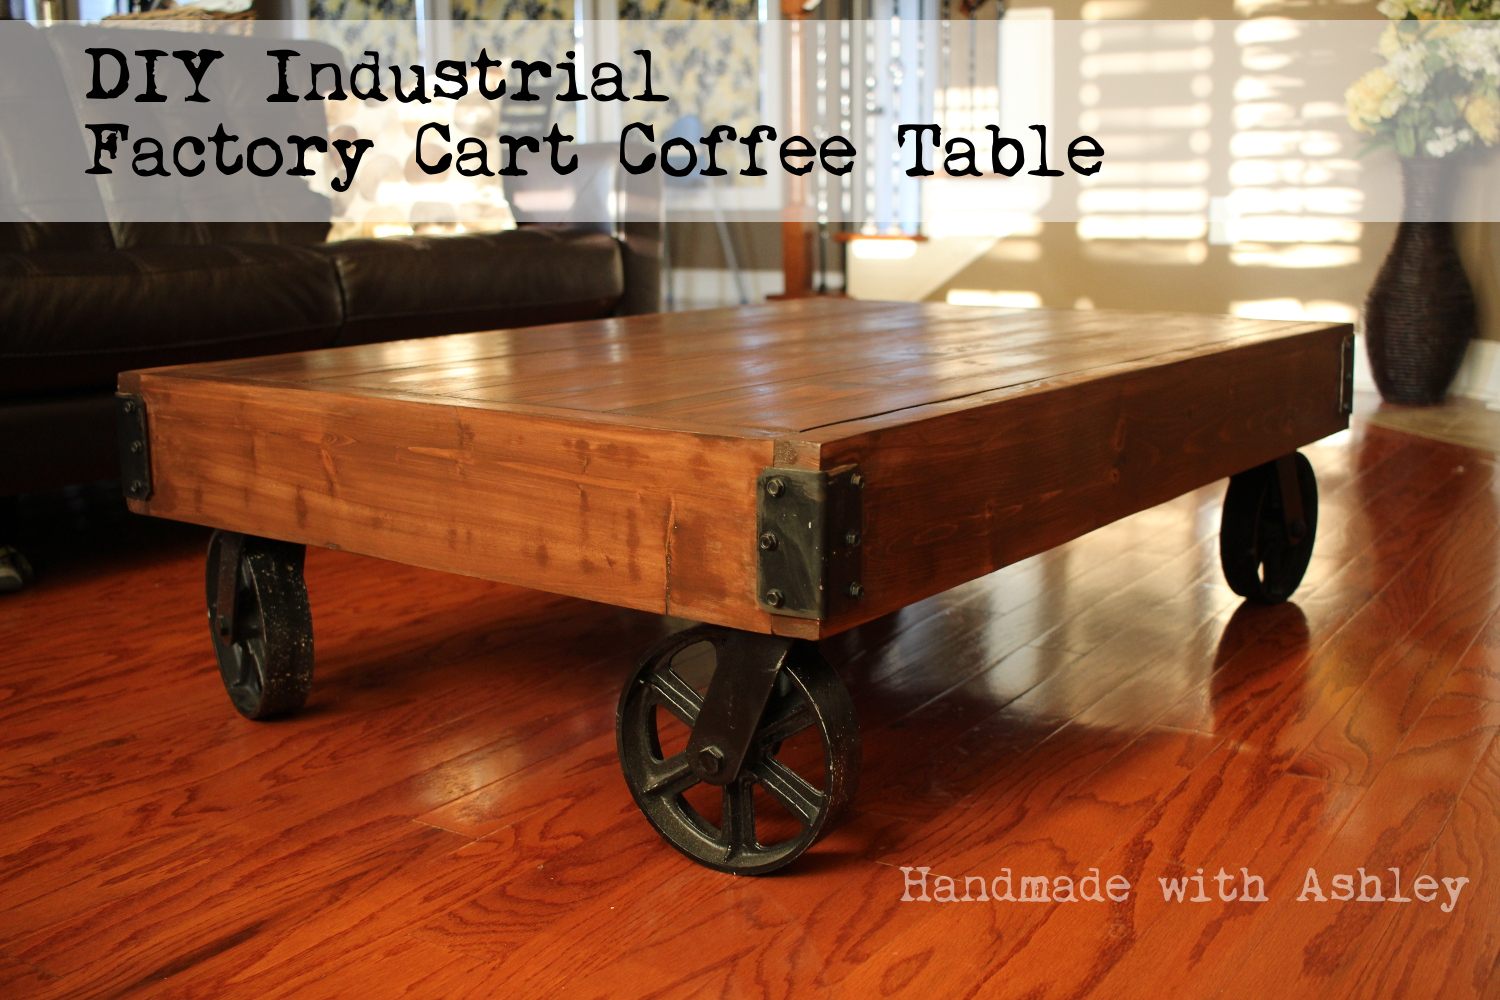 diy industrial factory cart coffee table (plansrogue engineer